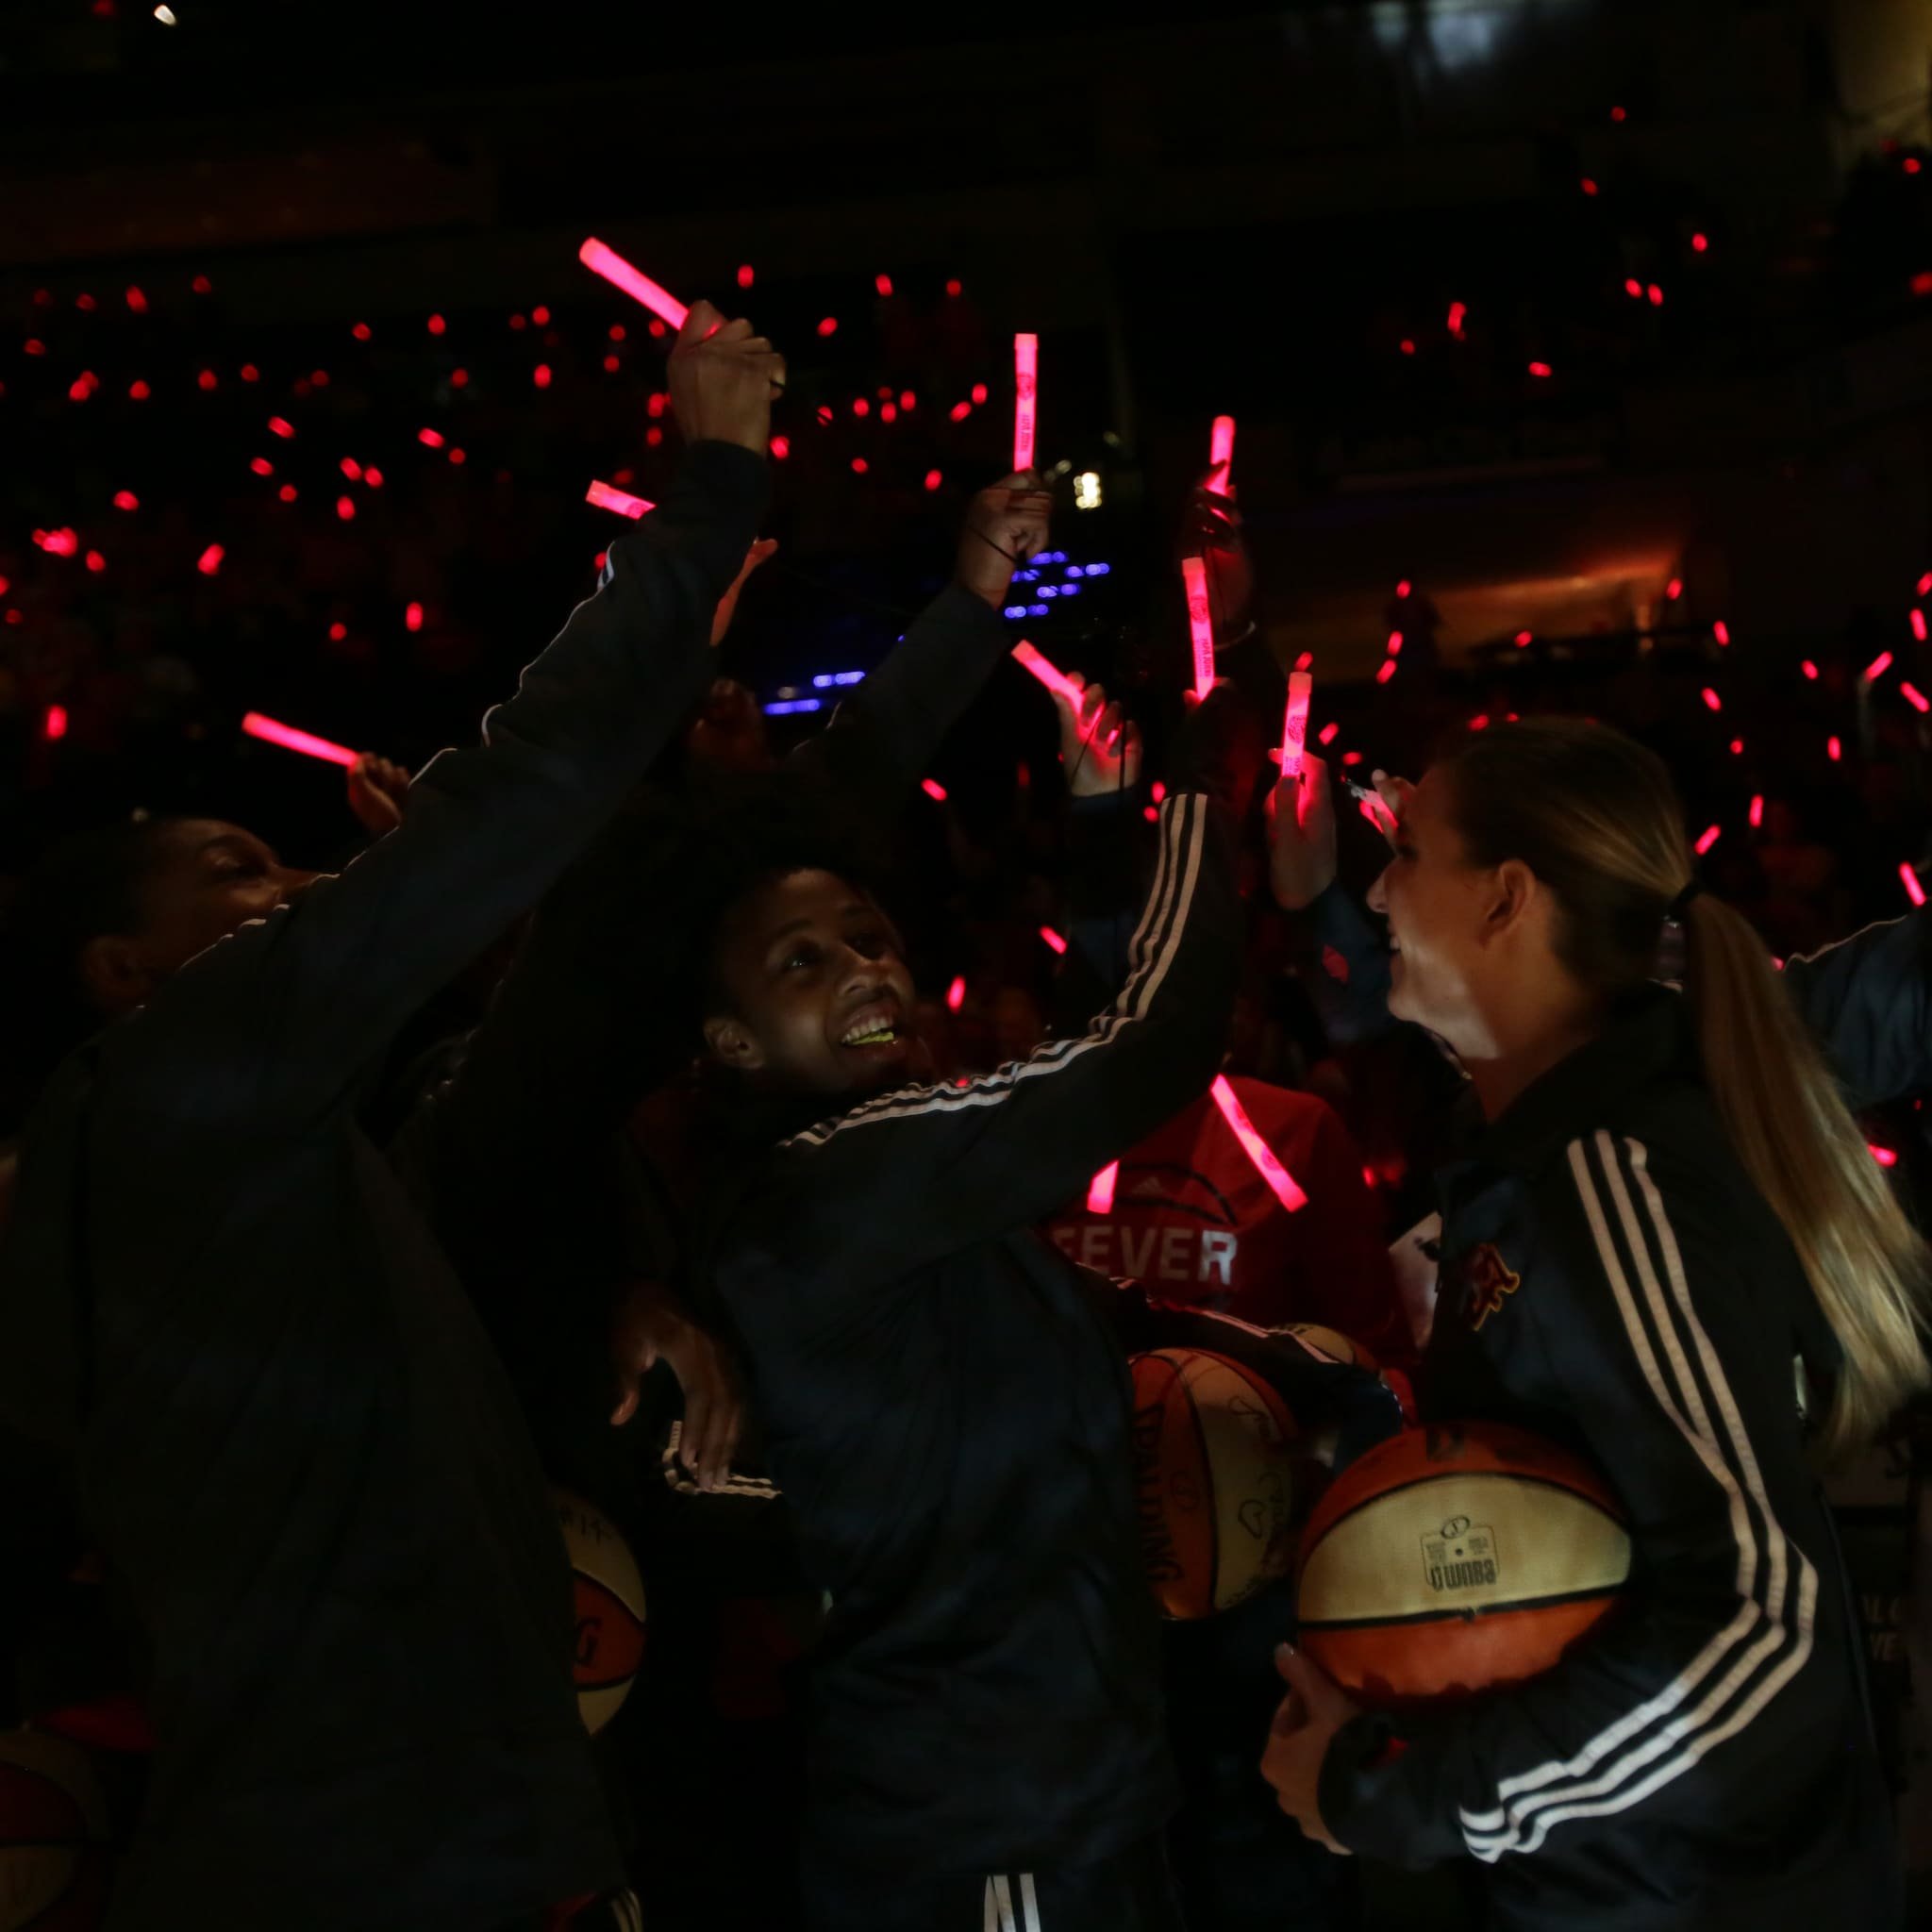 The Indiana Fever and their fans attempted to set a world record for most glow-sticks lit at the same time on Saturday night.